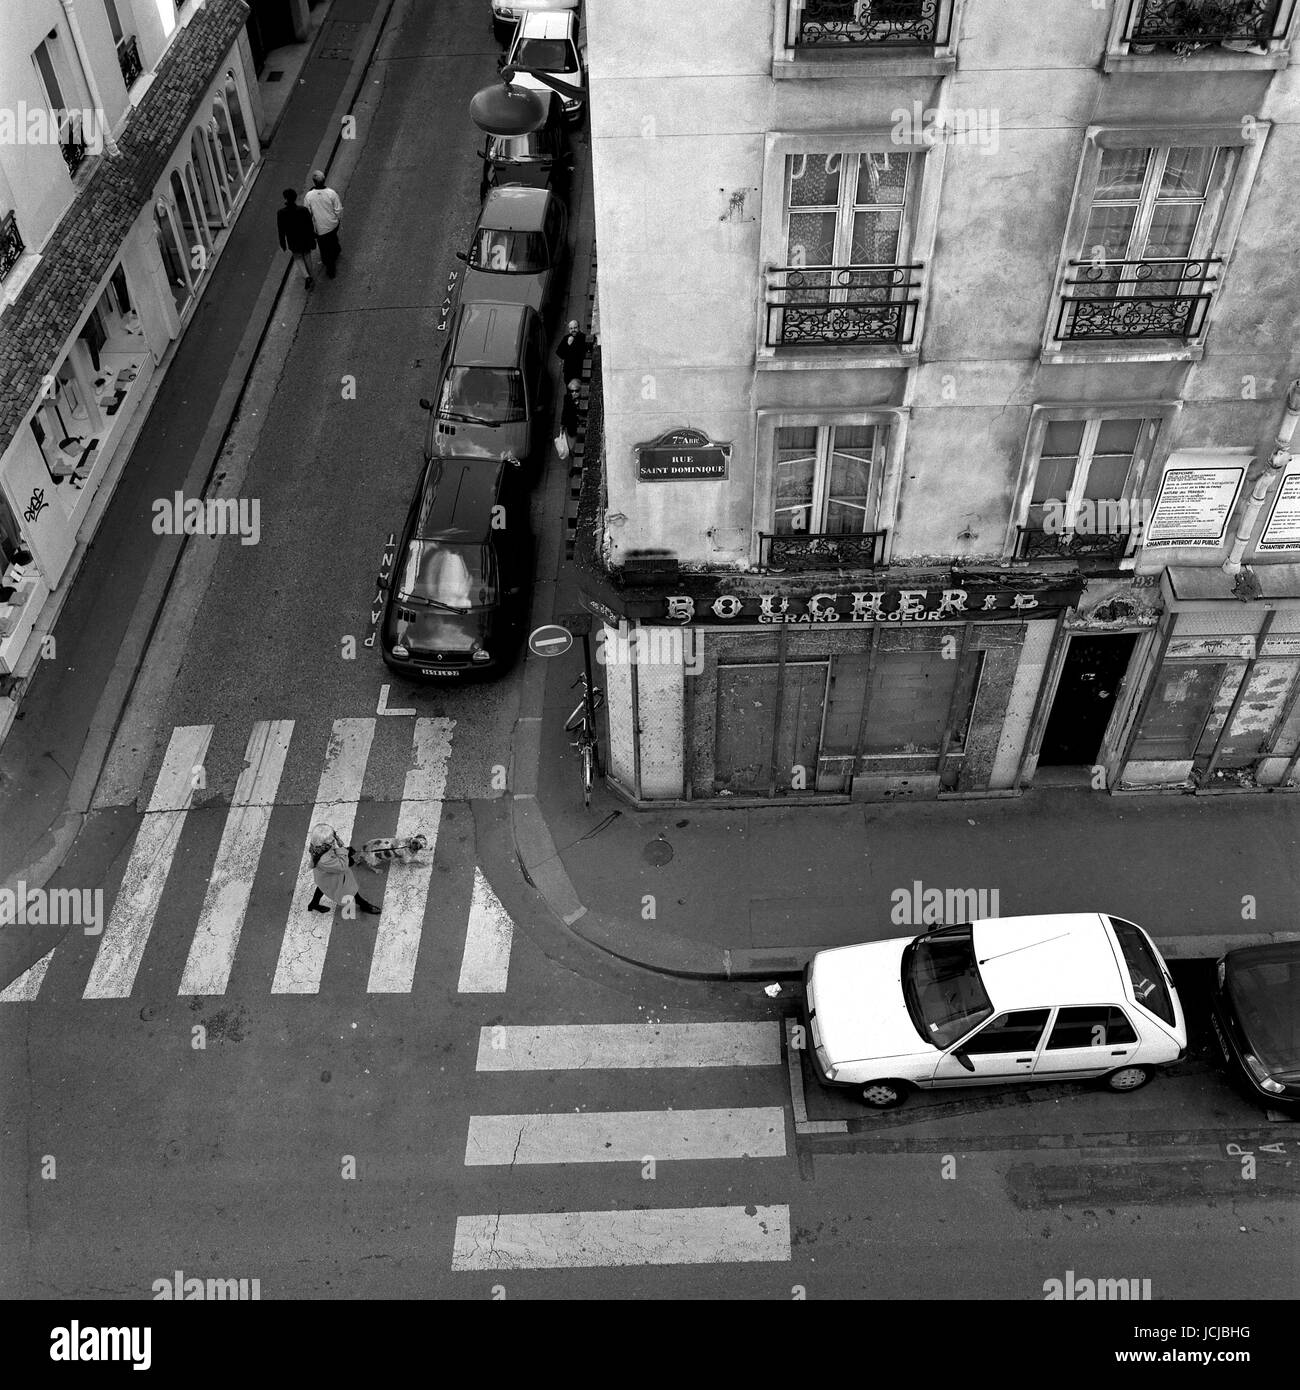 AJAXNETPHOTO. PARIS, FRANCE. OVERHEAD VIEW OF PEDESTRIAN CROSSING IN RUE SAINT DOMINIQUE. PHOTO:JONATHAN EASTLAND/AJAX - Stock Image